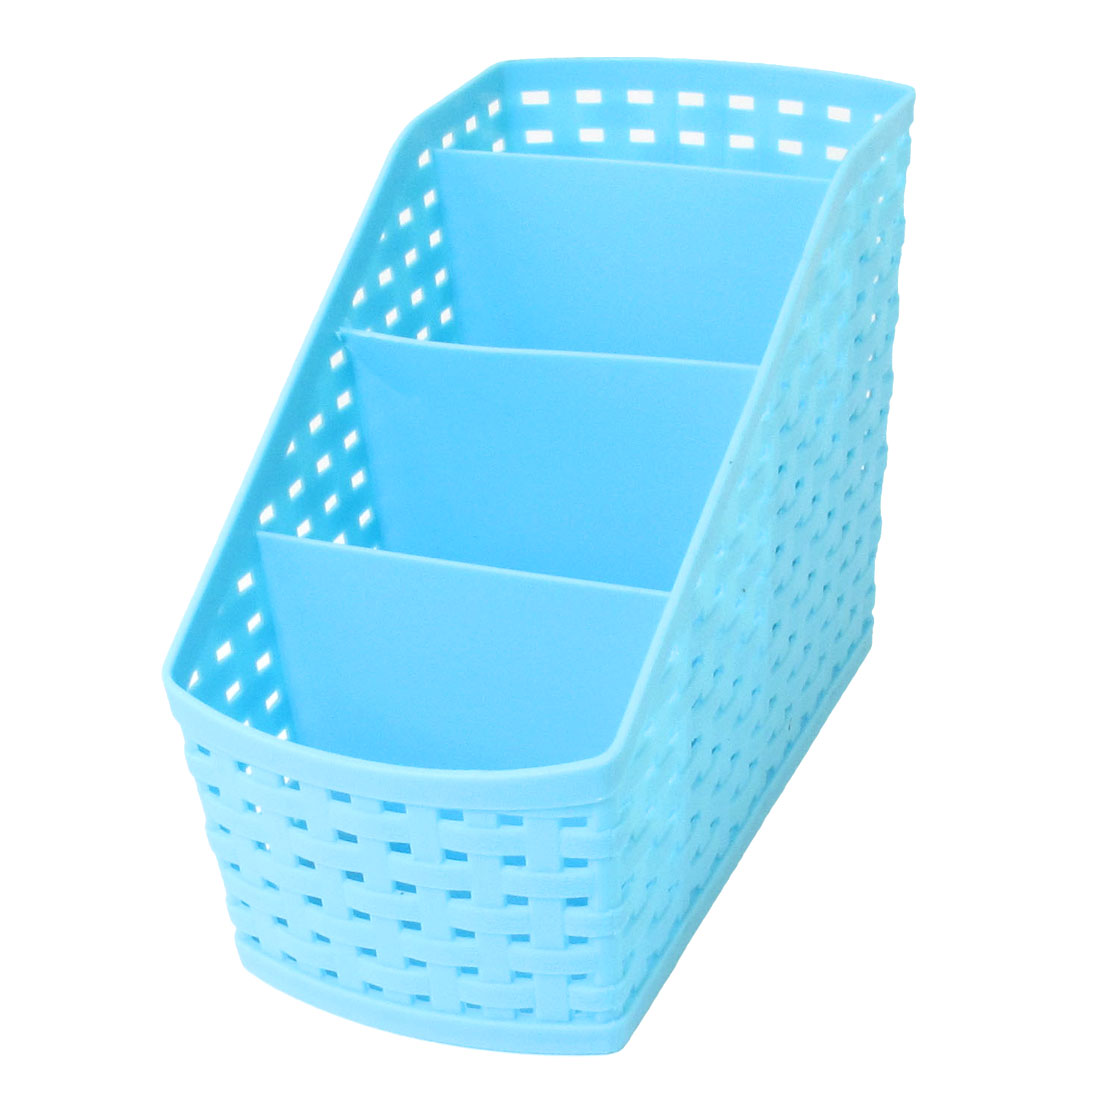 Home Cosmetic Remote Control Desktop Storage Divider Container Box Blue